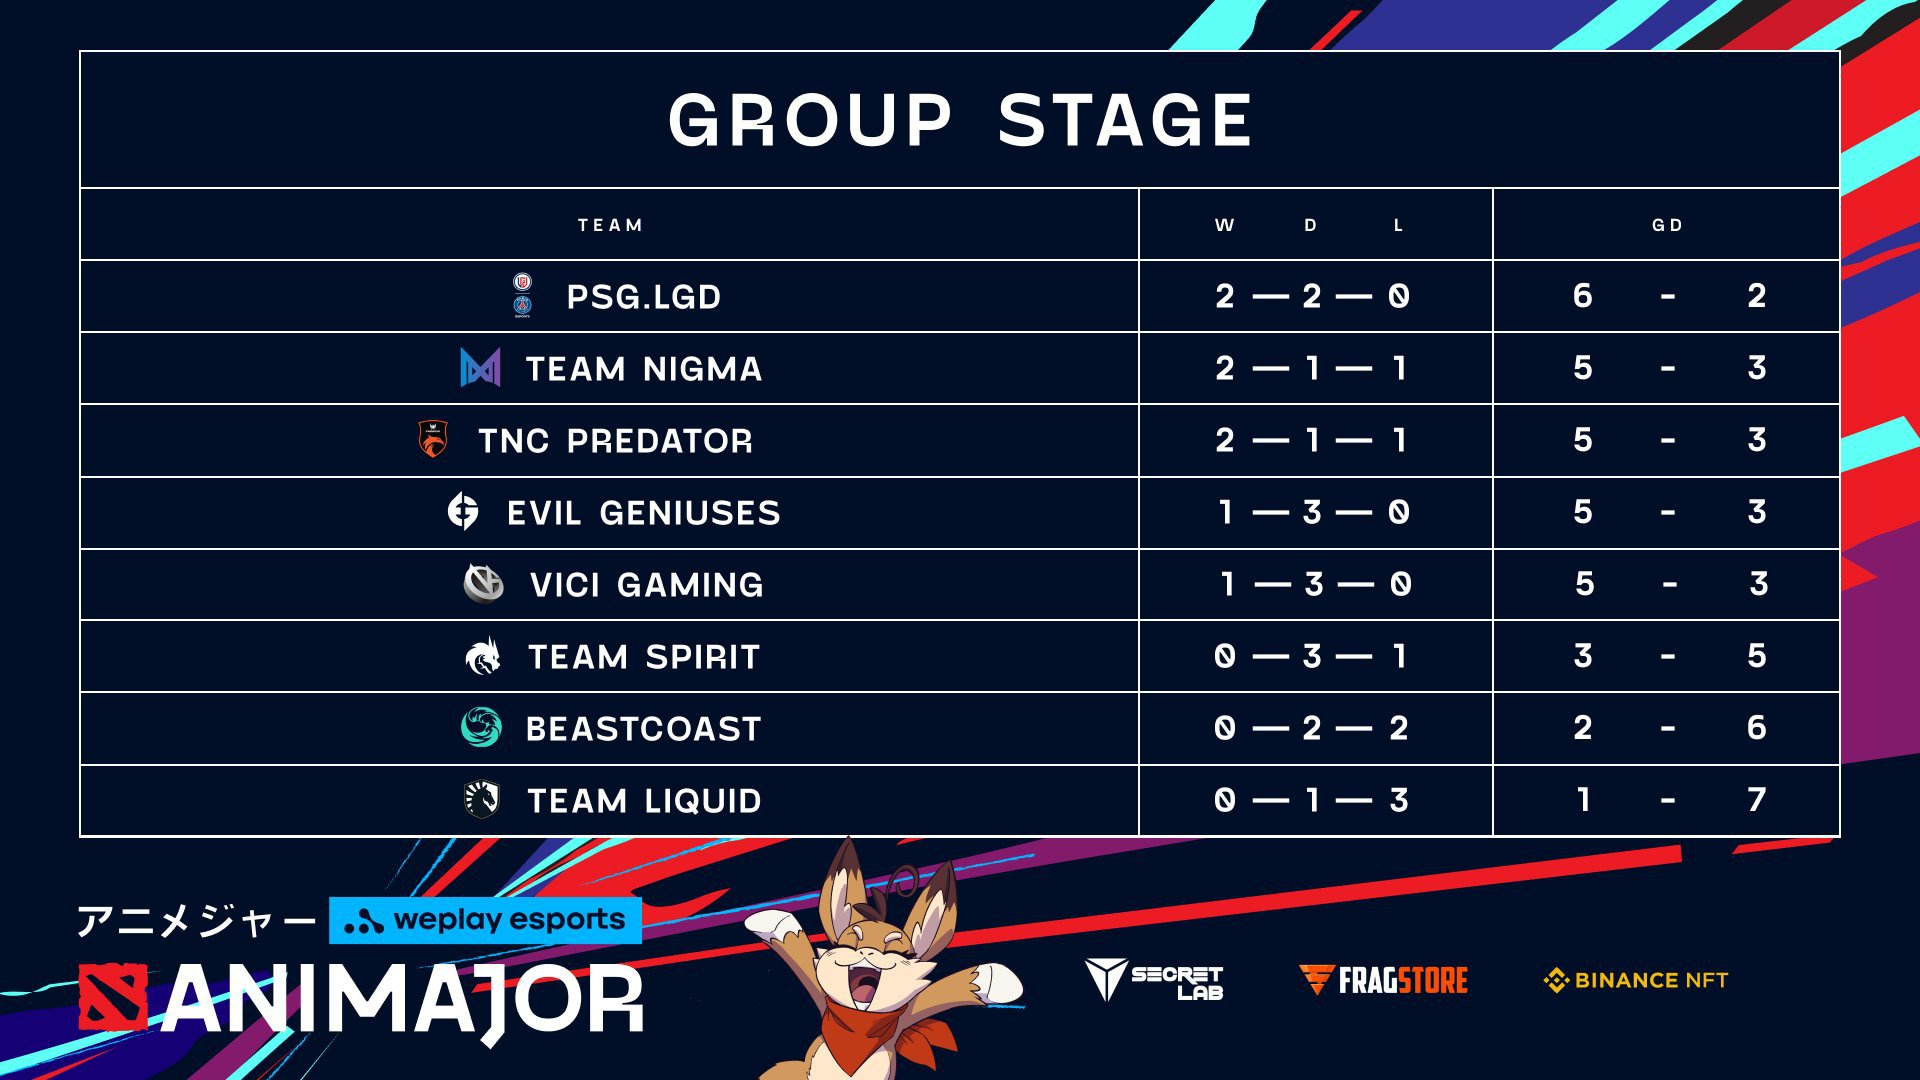 Second day of WePlay AniMajor Group Stage chart! Image: WePlay Holding